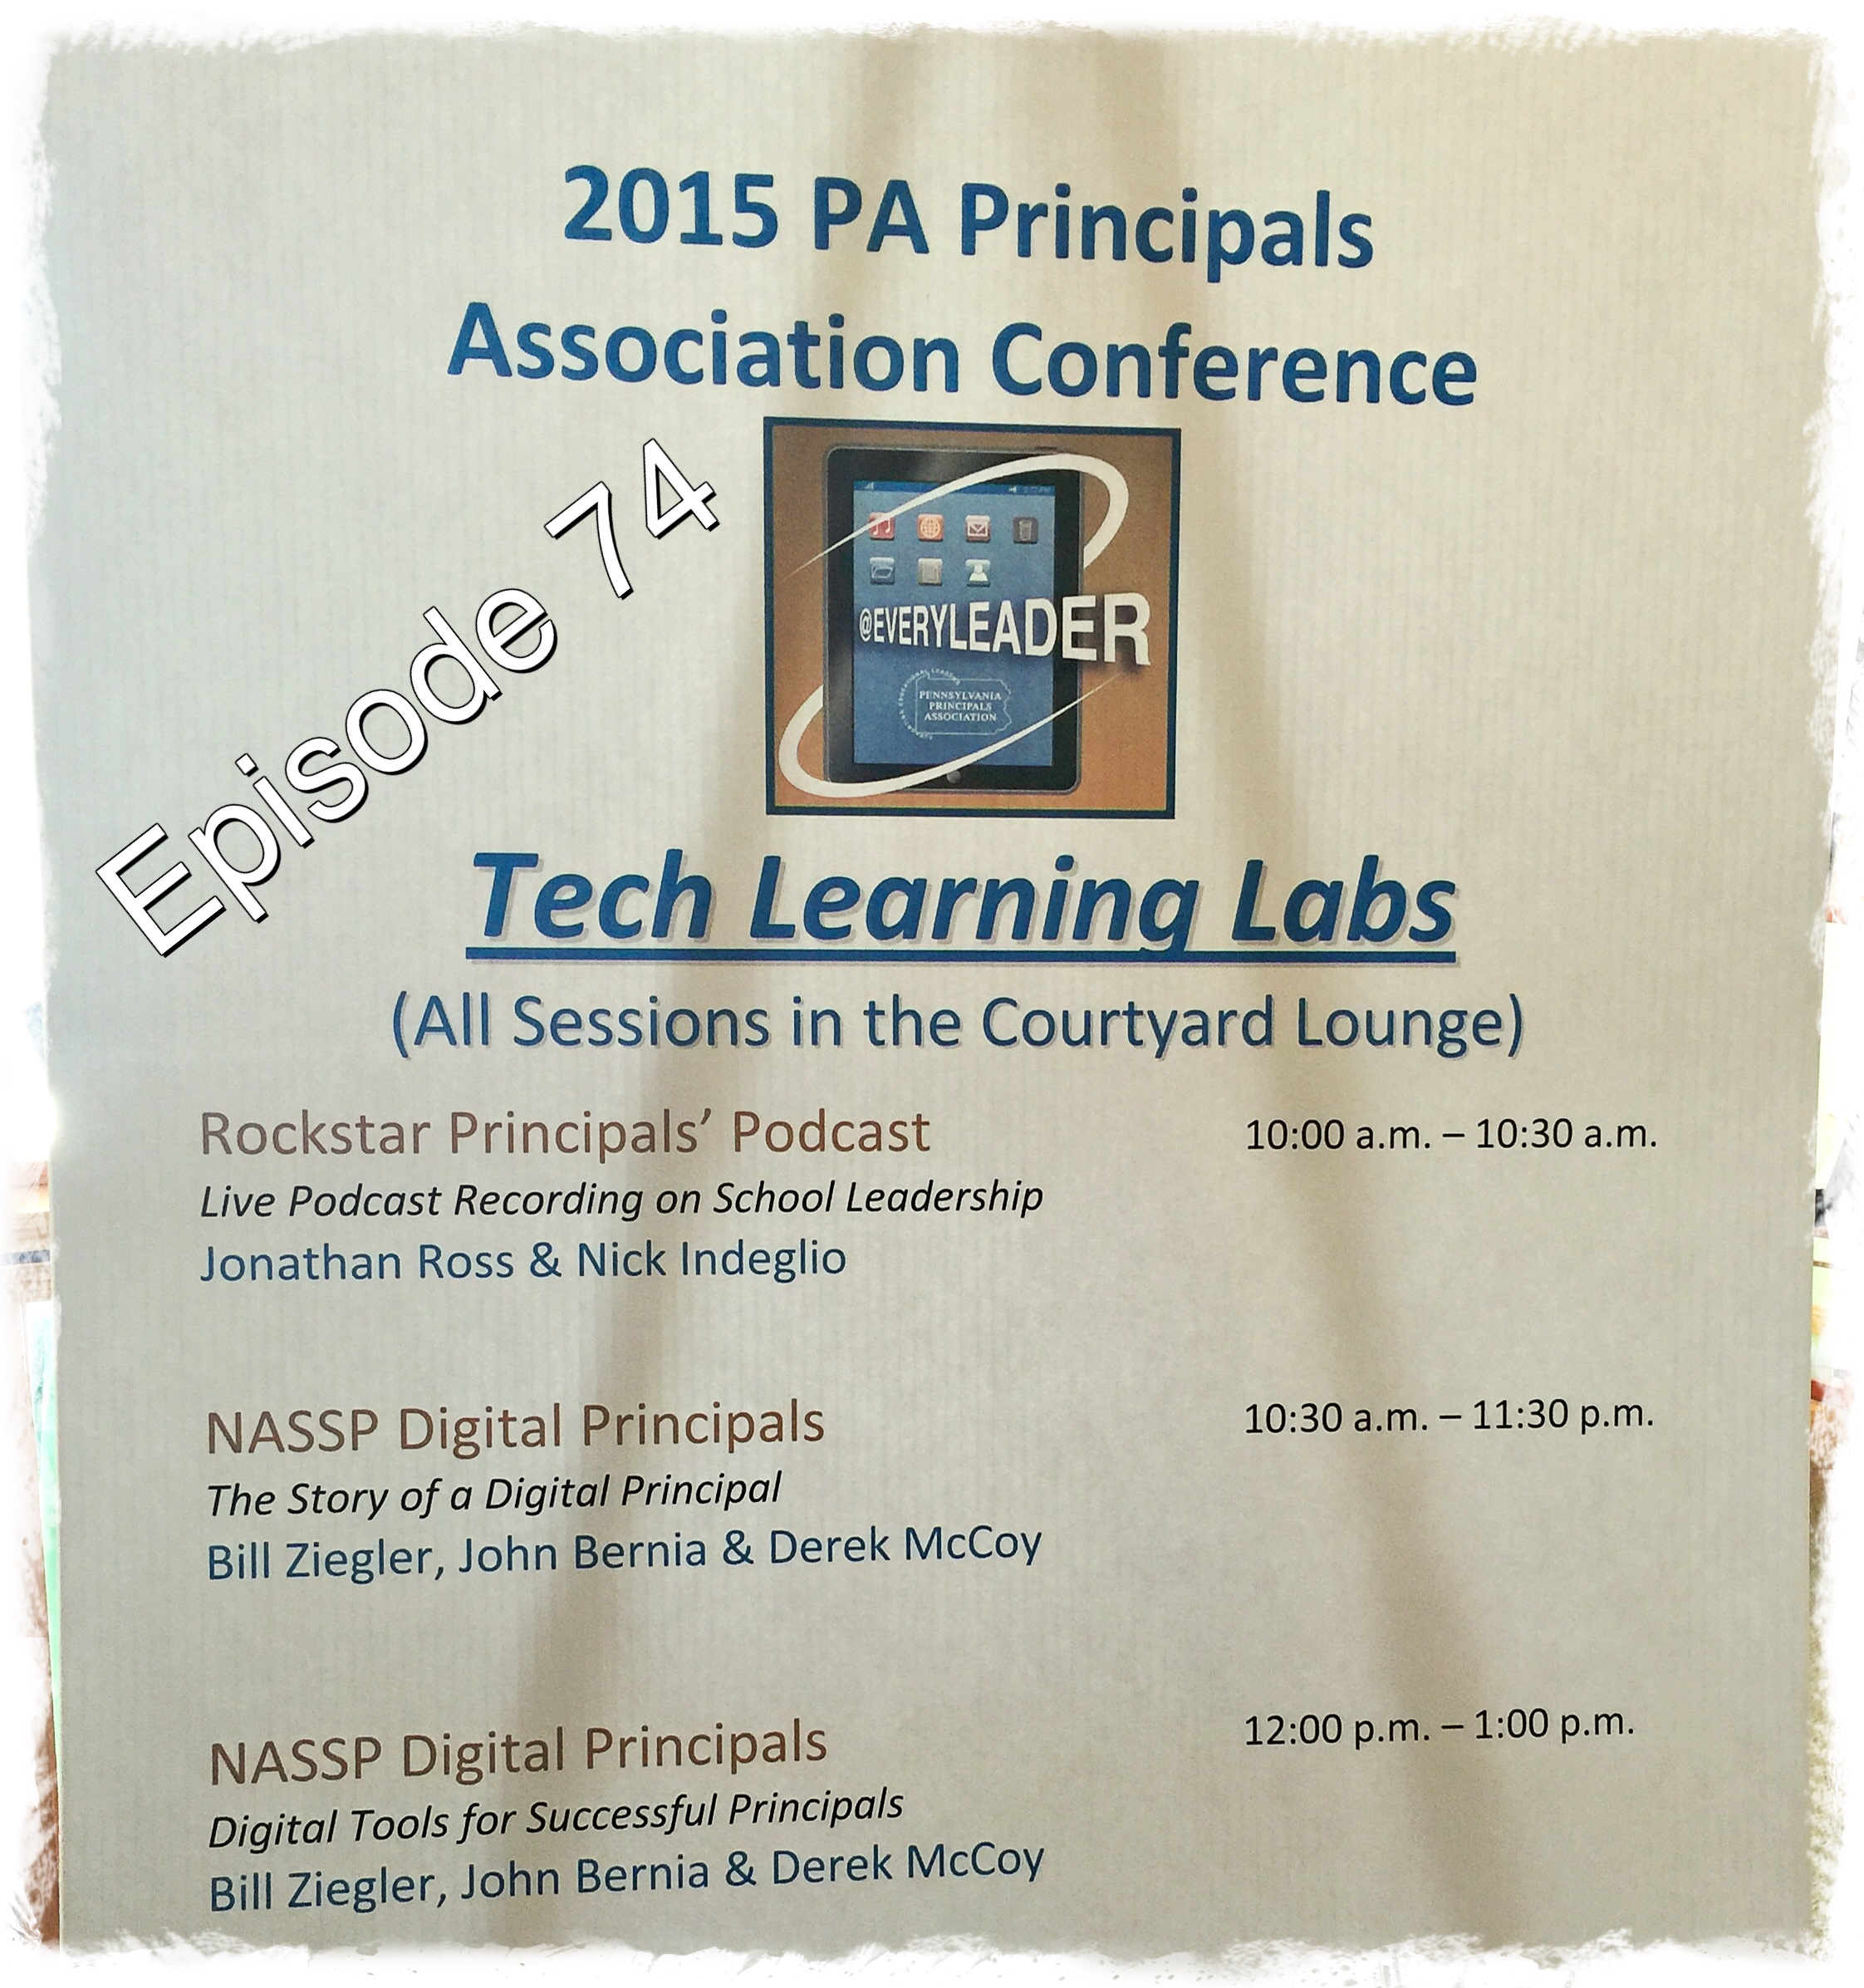 Episode 74: The Rock Star Principals' Podcast LIVE at Tech Lab (PA Principals' Association State Conference 2015)